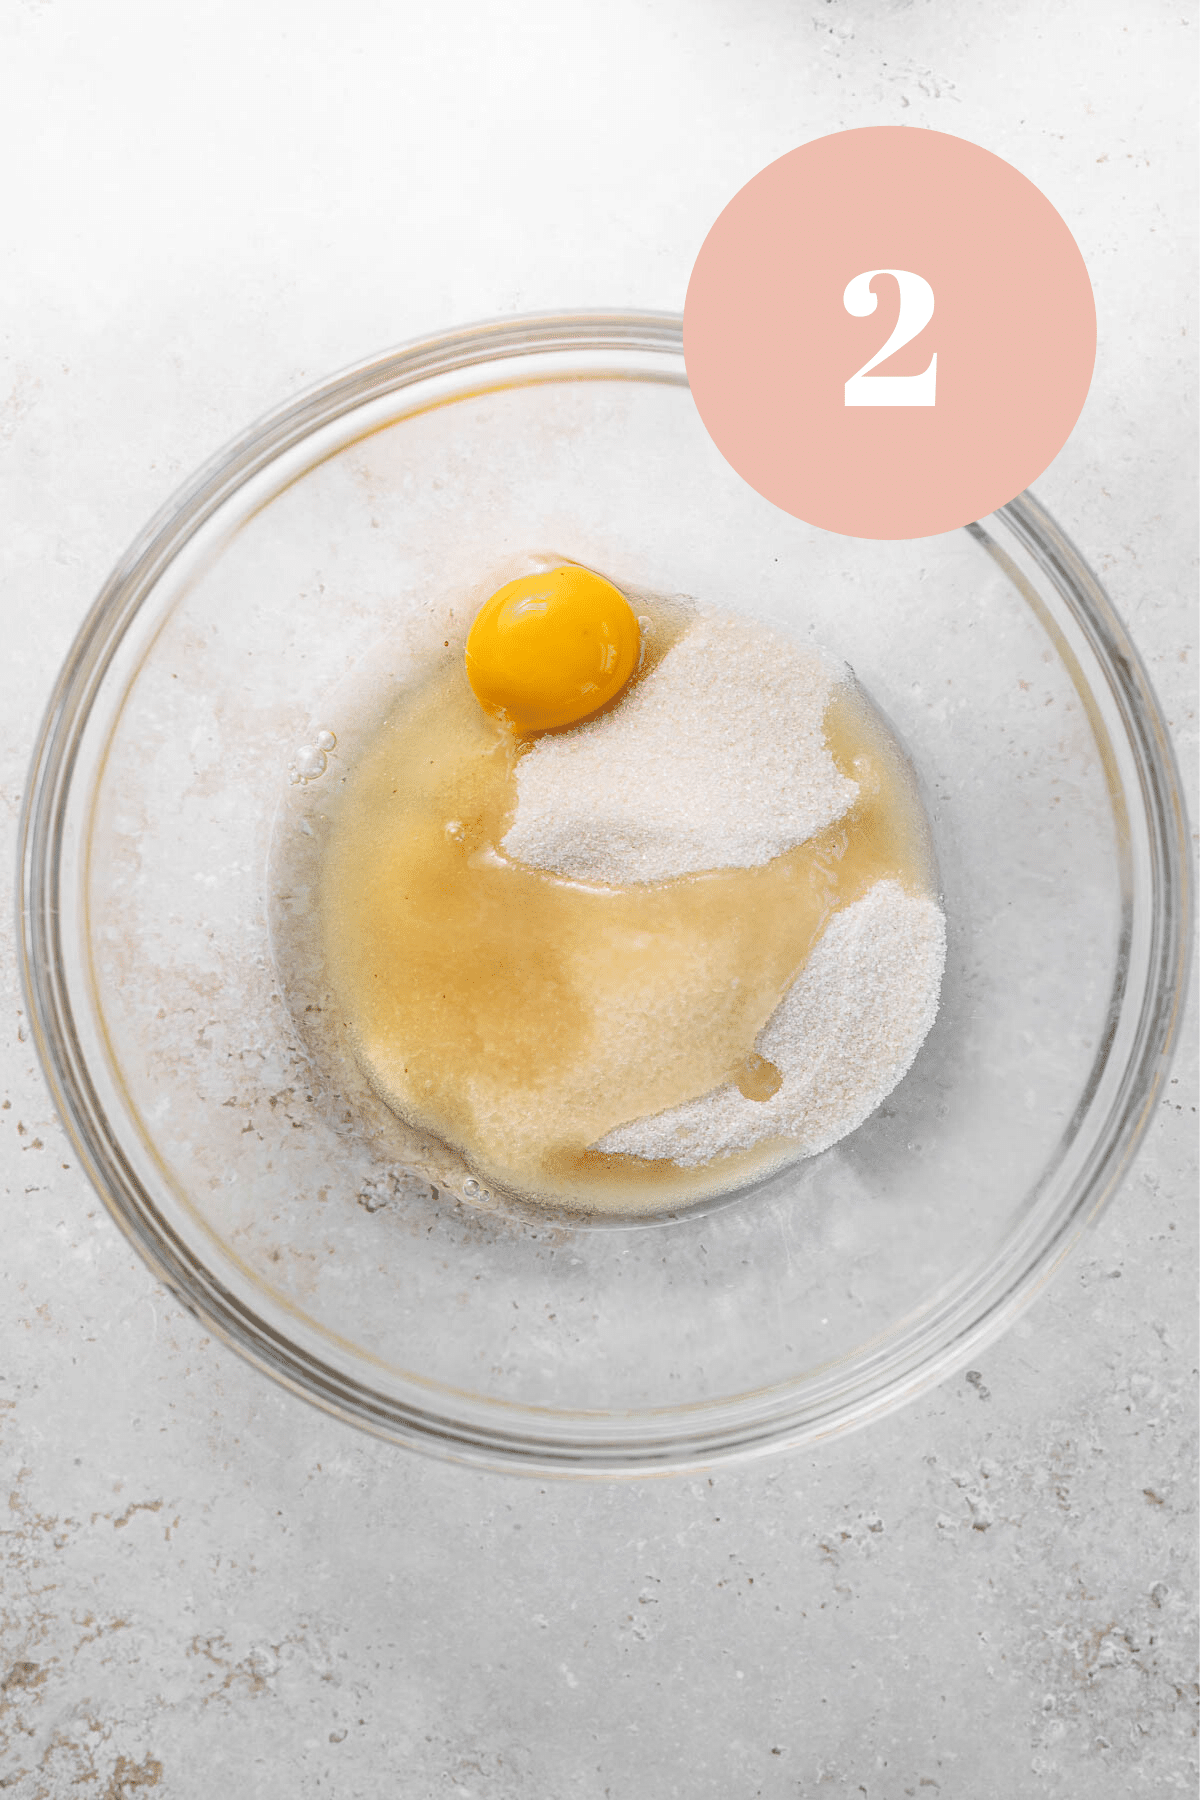 a bowl of sugar and eggs before mixing